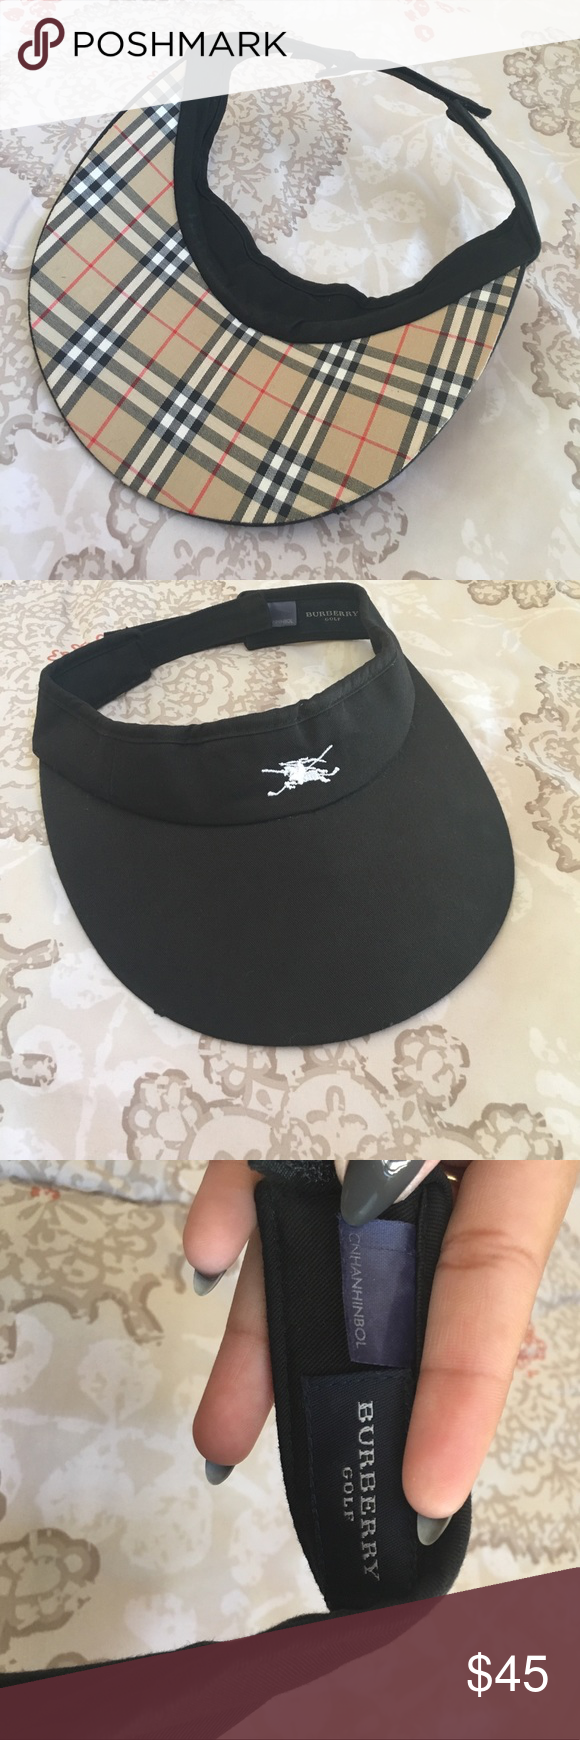 Burberry golf hat Black Burberry visor hat with adjustable strap! Has small  defect on last picture! OVERALL Cute hat for shade! Burberry Other 05d17ddad96